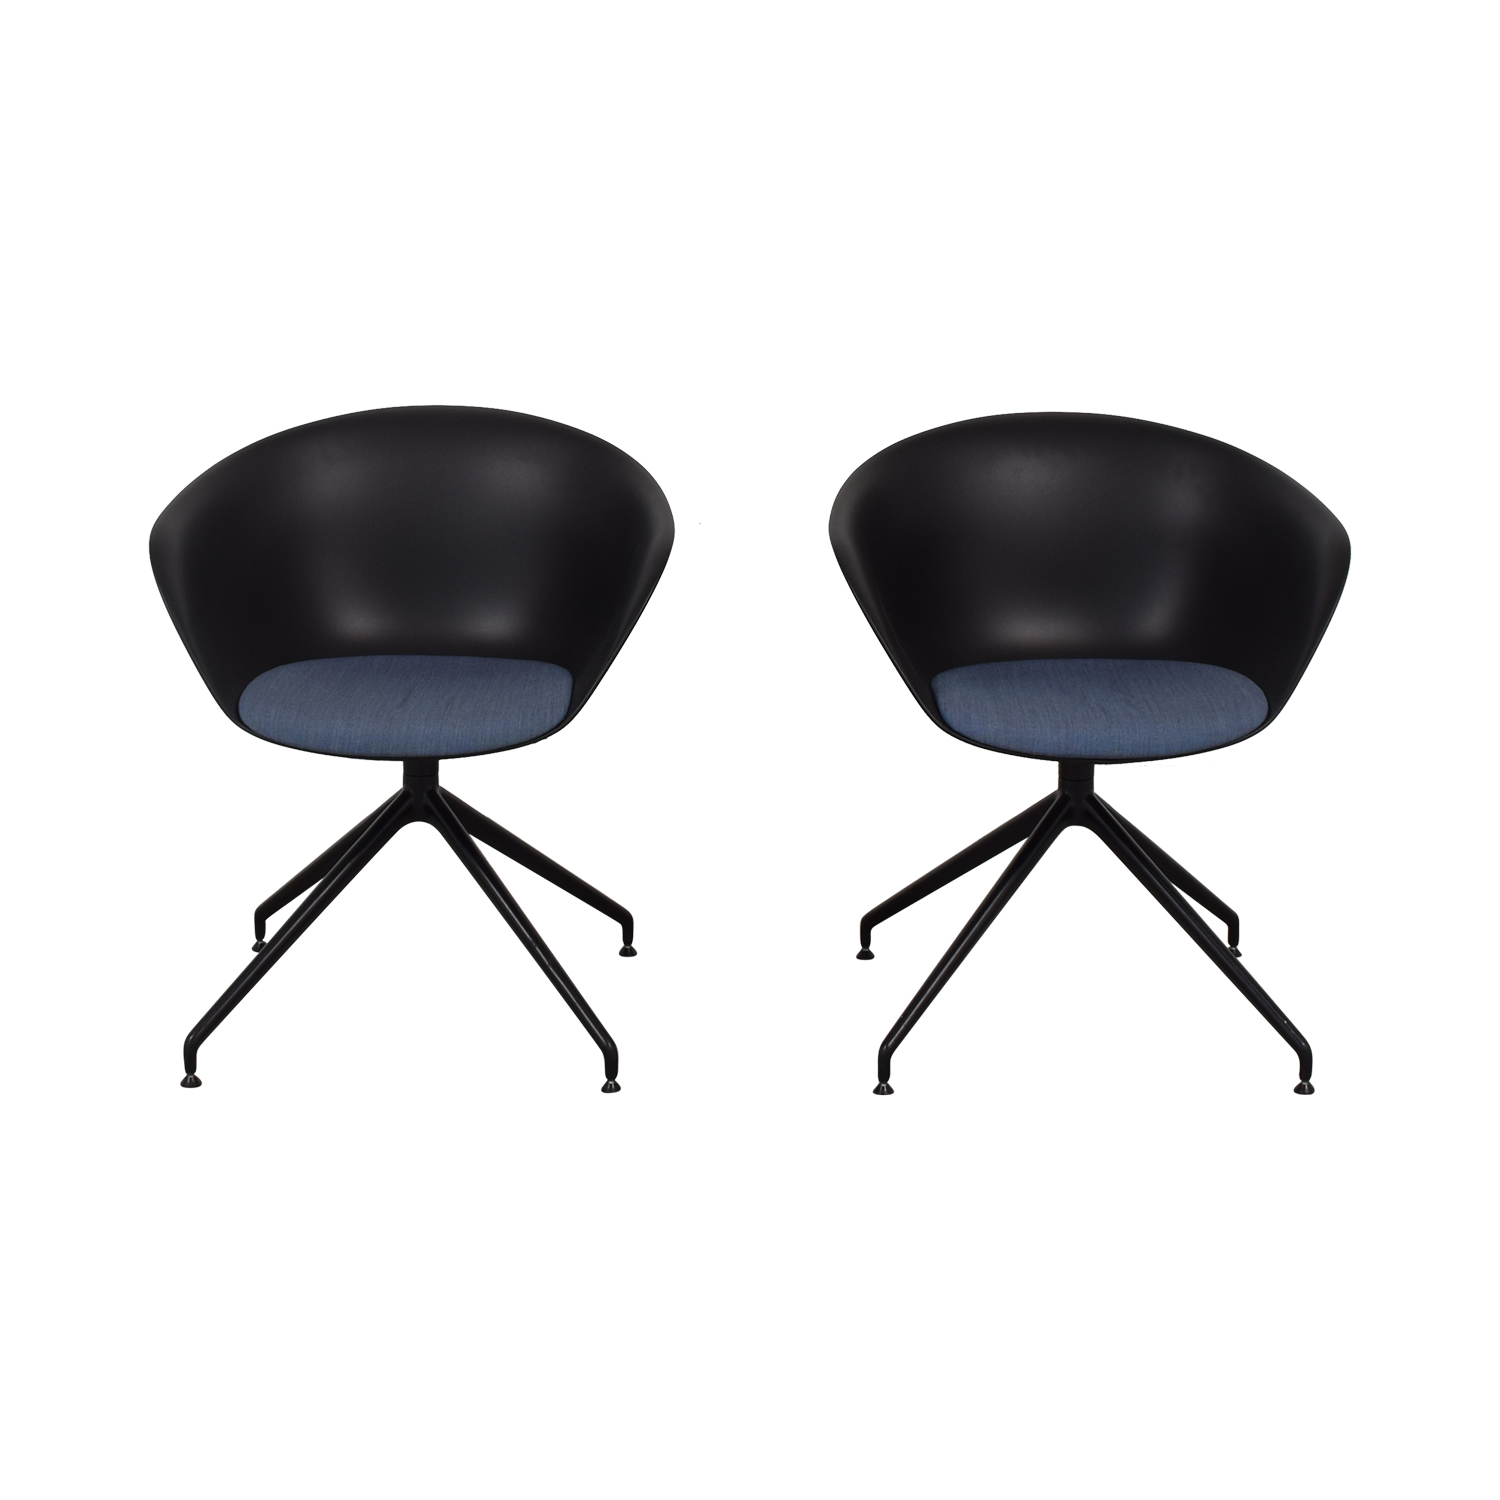 Arper Arper Duna Dining Chairs black and blue